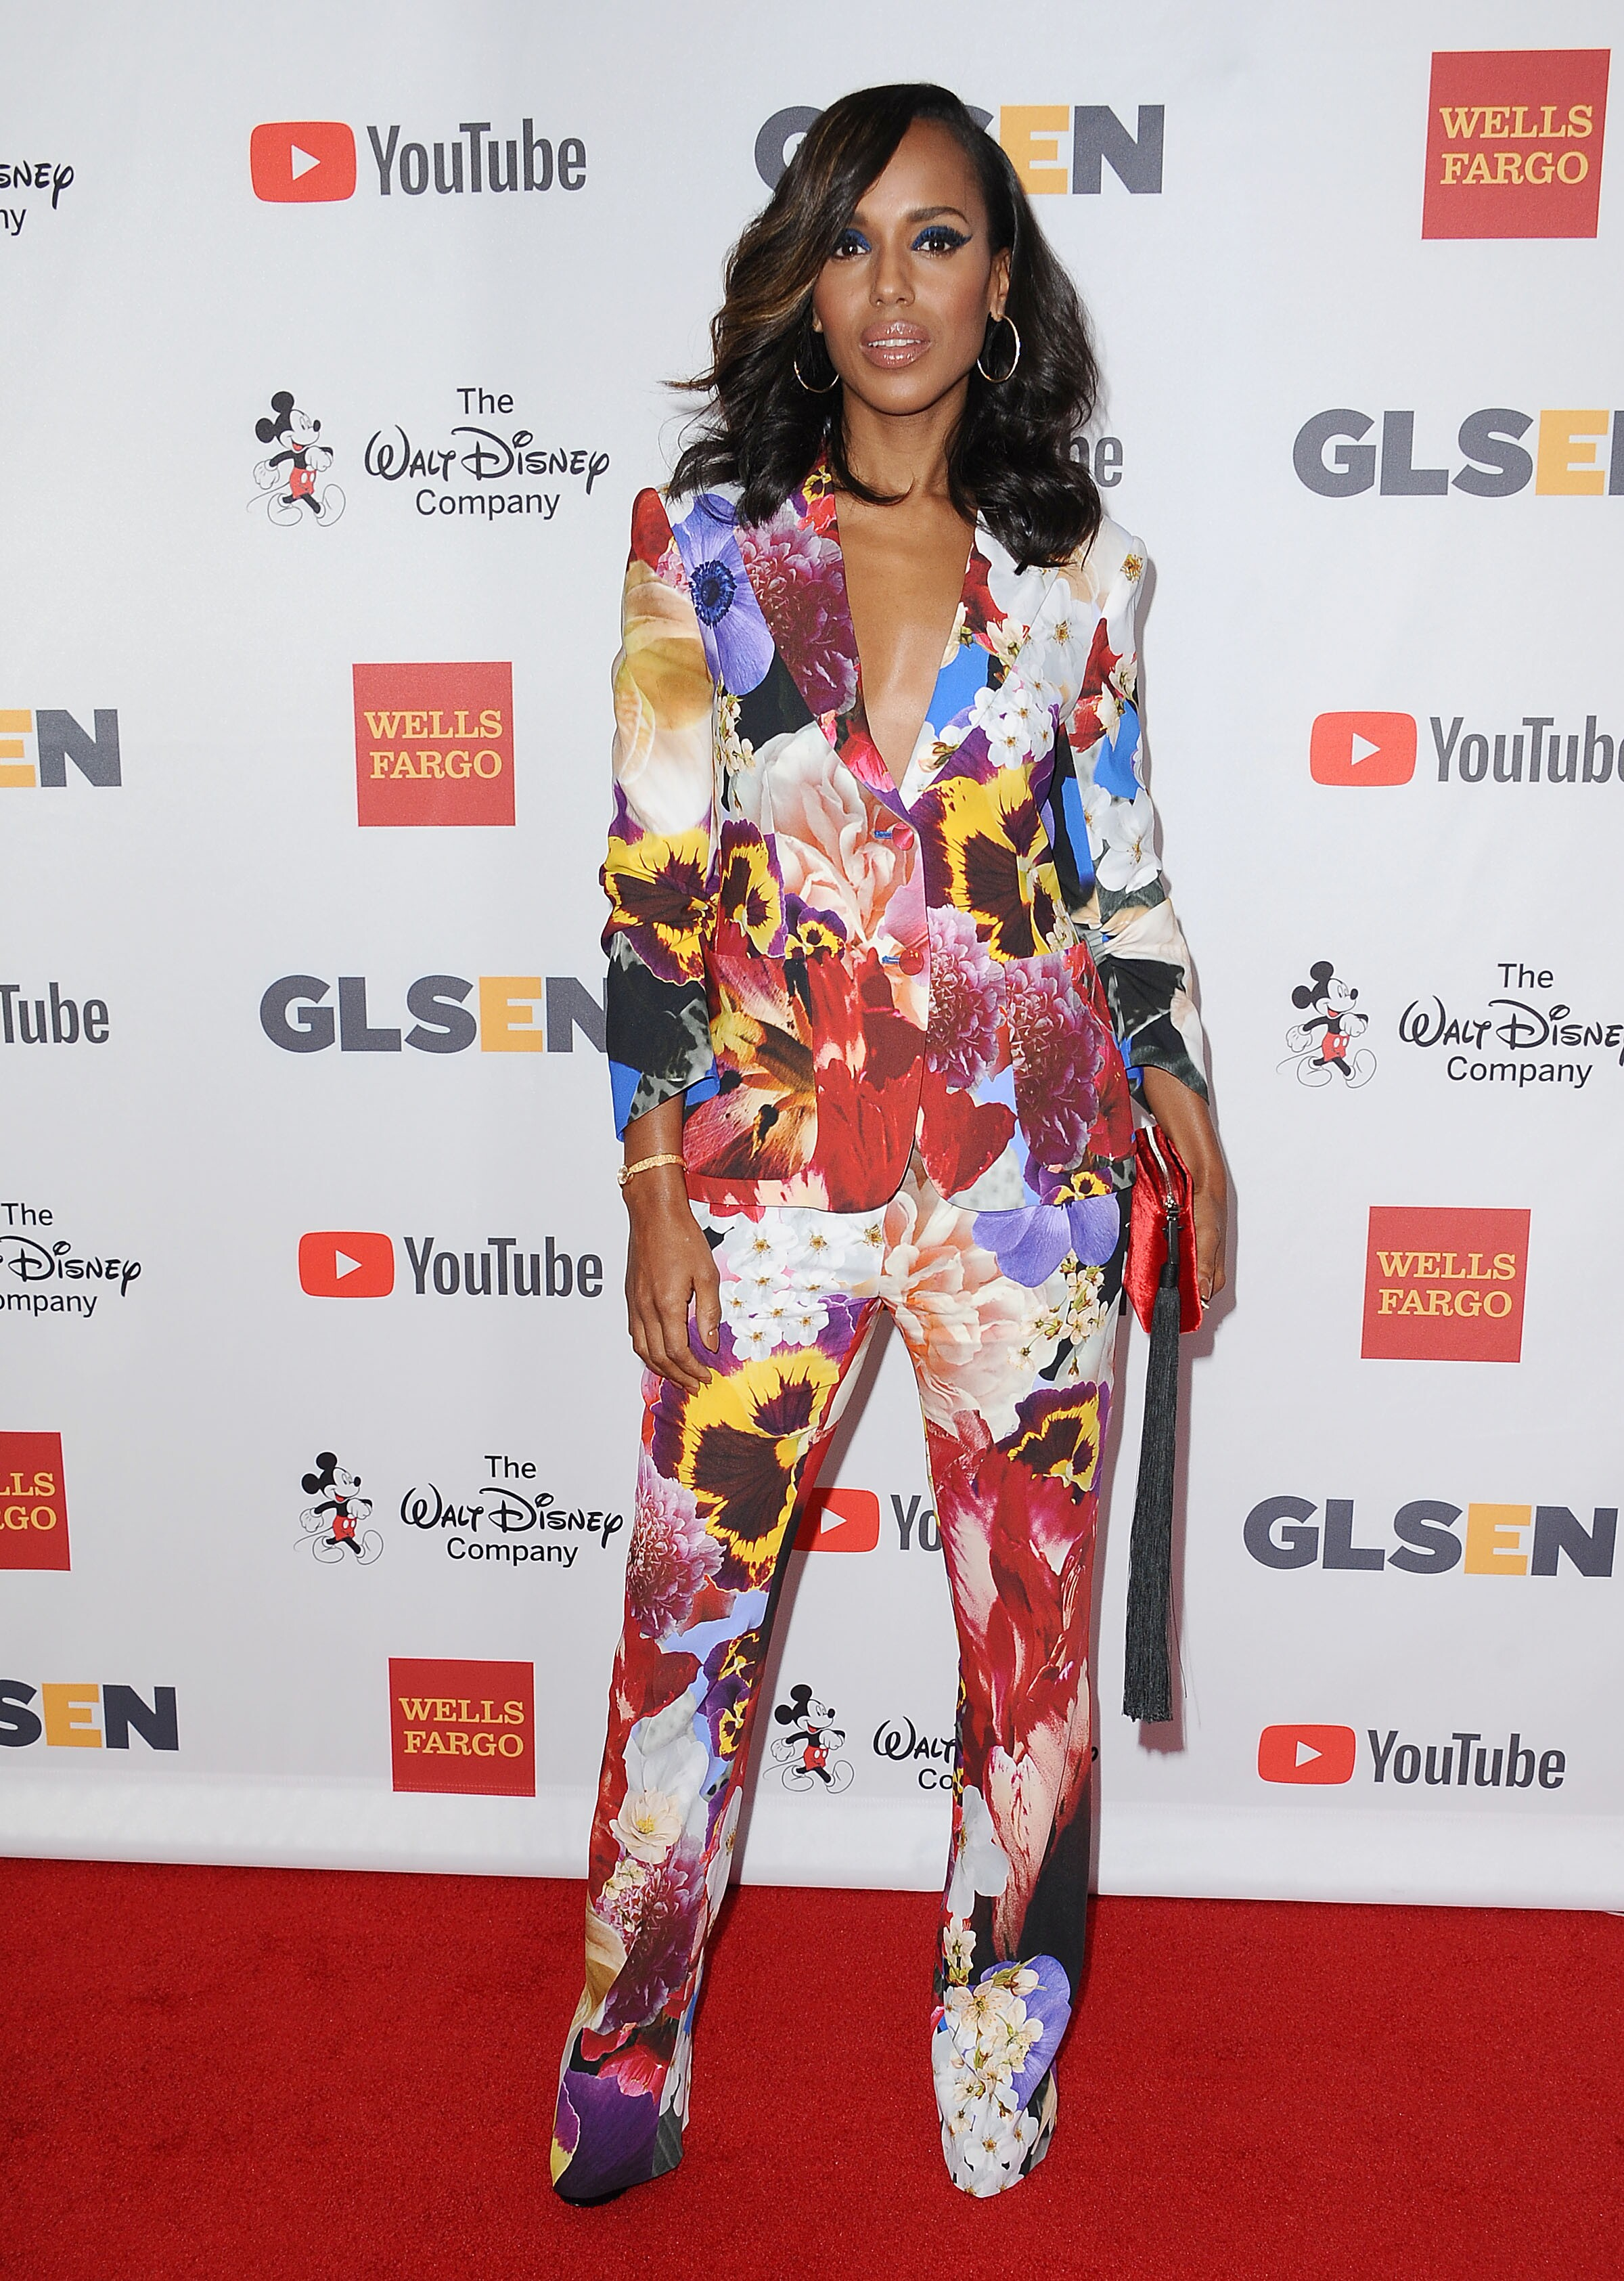 aarp, sisters, kerry washington